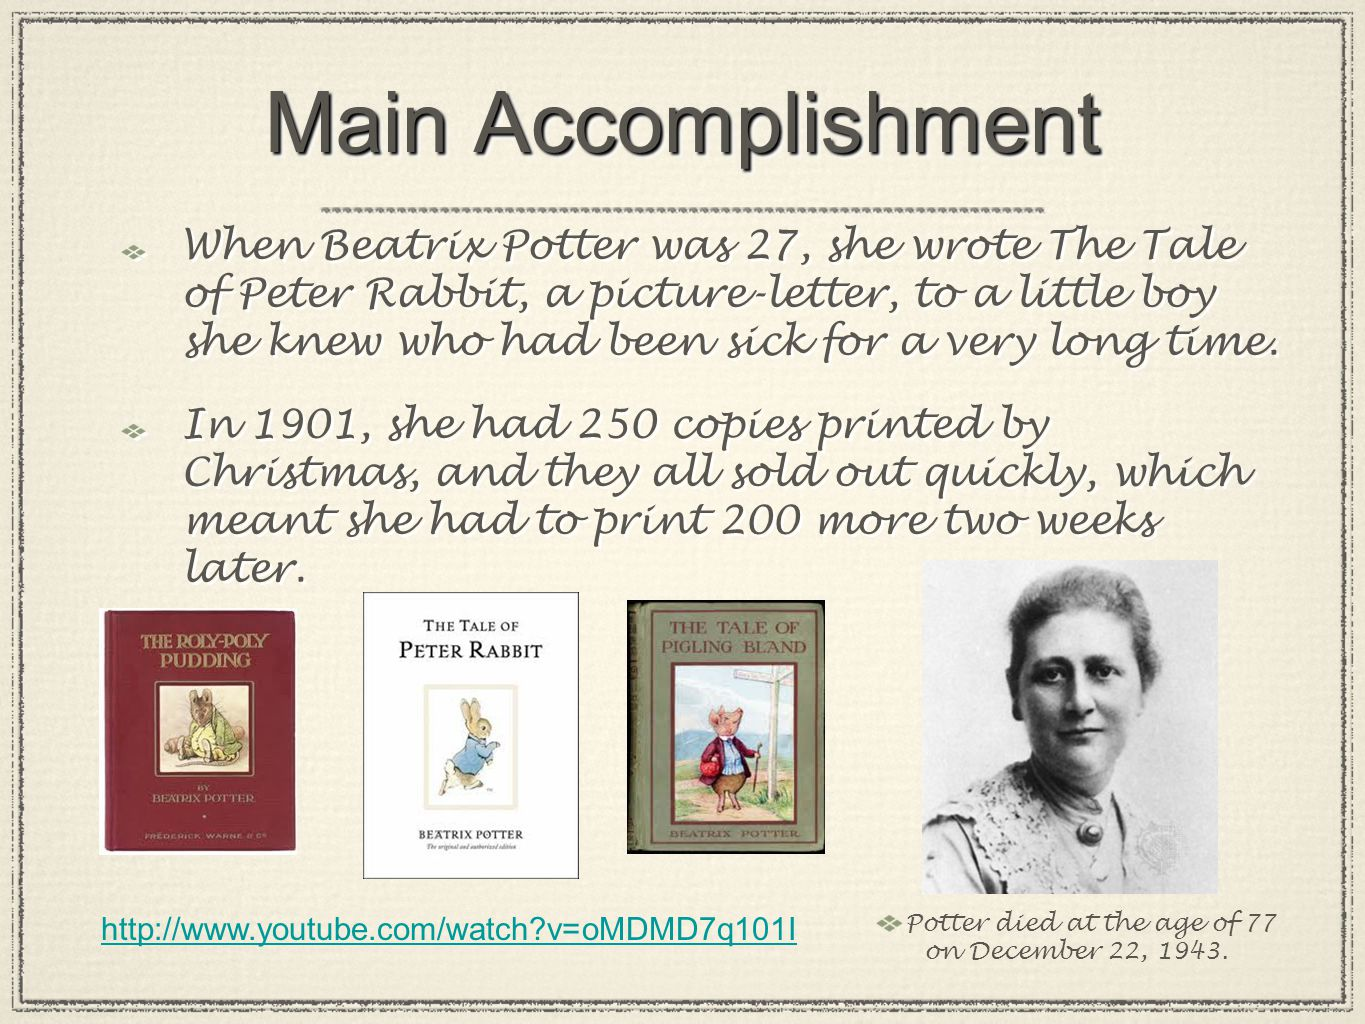 Main Accomplishment When Beatrix Potter was 27, she wrote The Tale of Peter Rabbit, a picture-letter, to a little boy she knew who had been sick for a very long time.